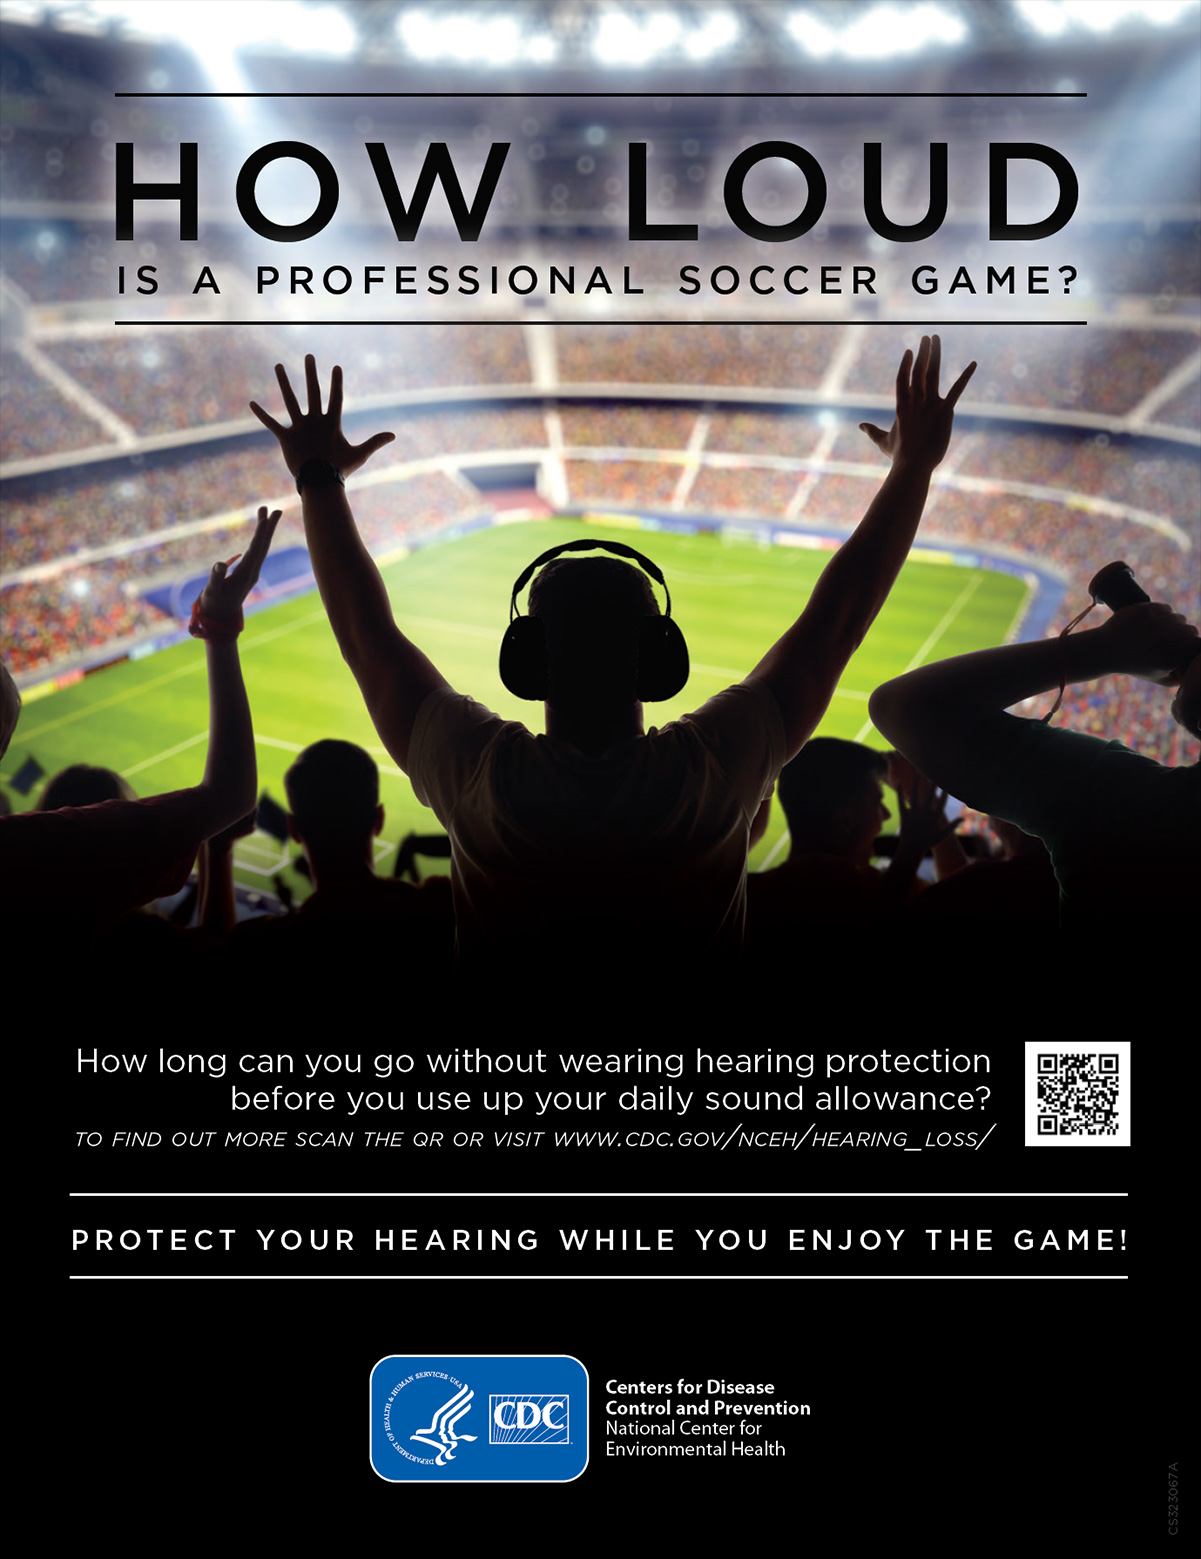 How Loud is a Professional Soccer Game? Visit www.cdc.gov/nceh/hearing_loss/ to learn more.